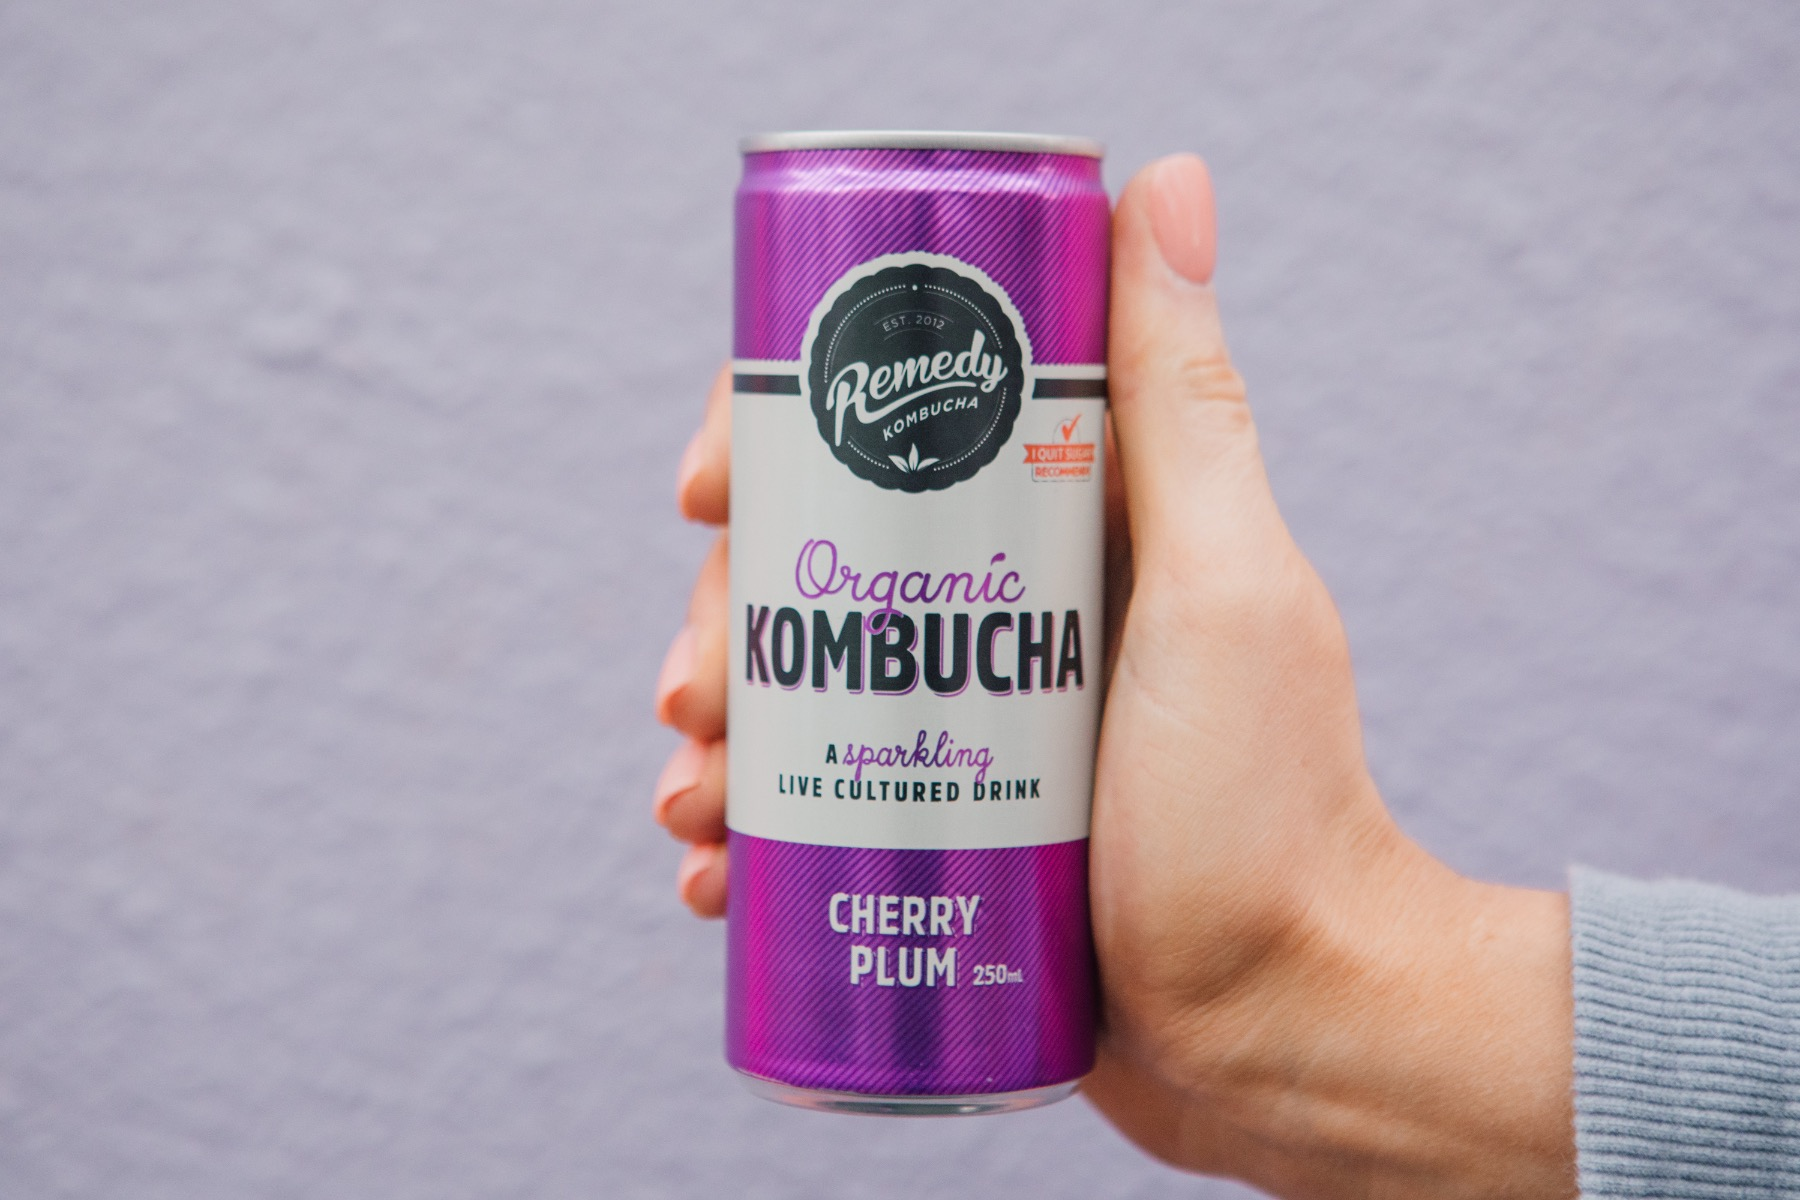 Hand holding can of Cherry Plum Remedy Kombucha